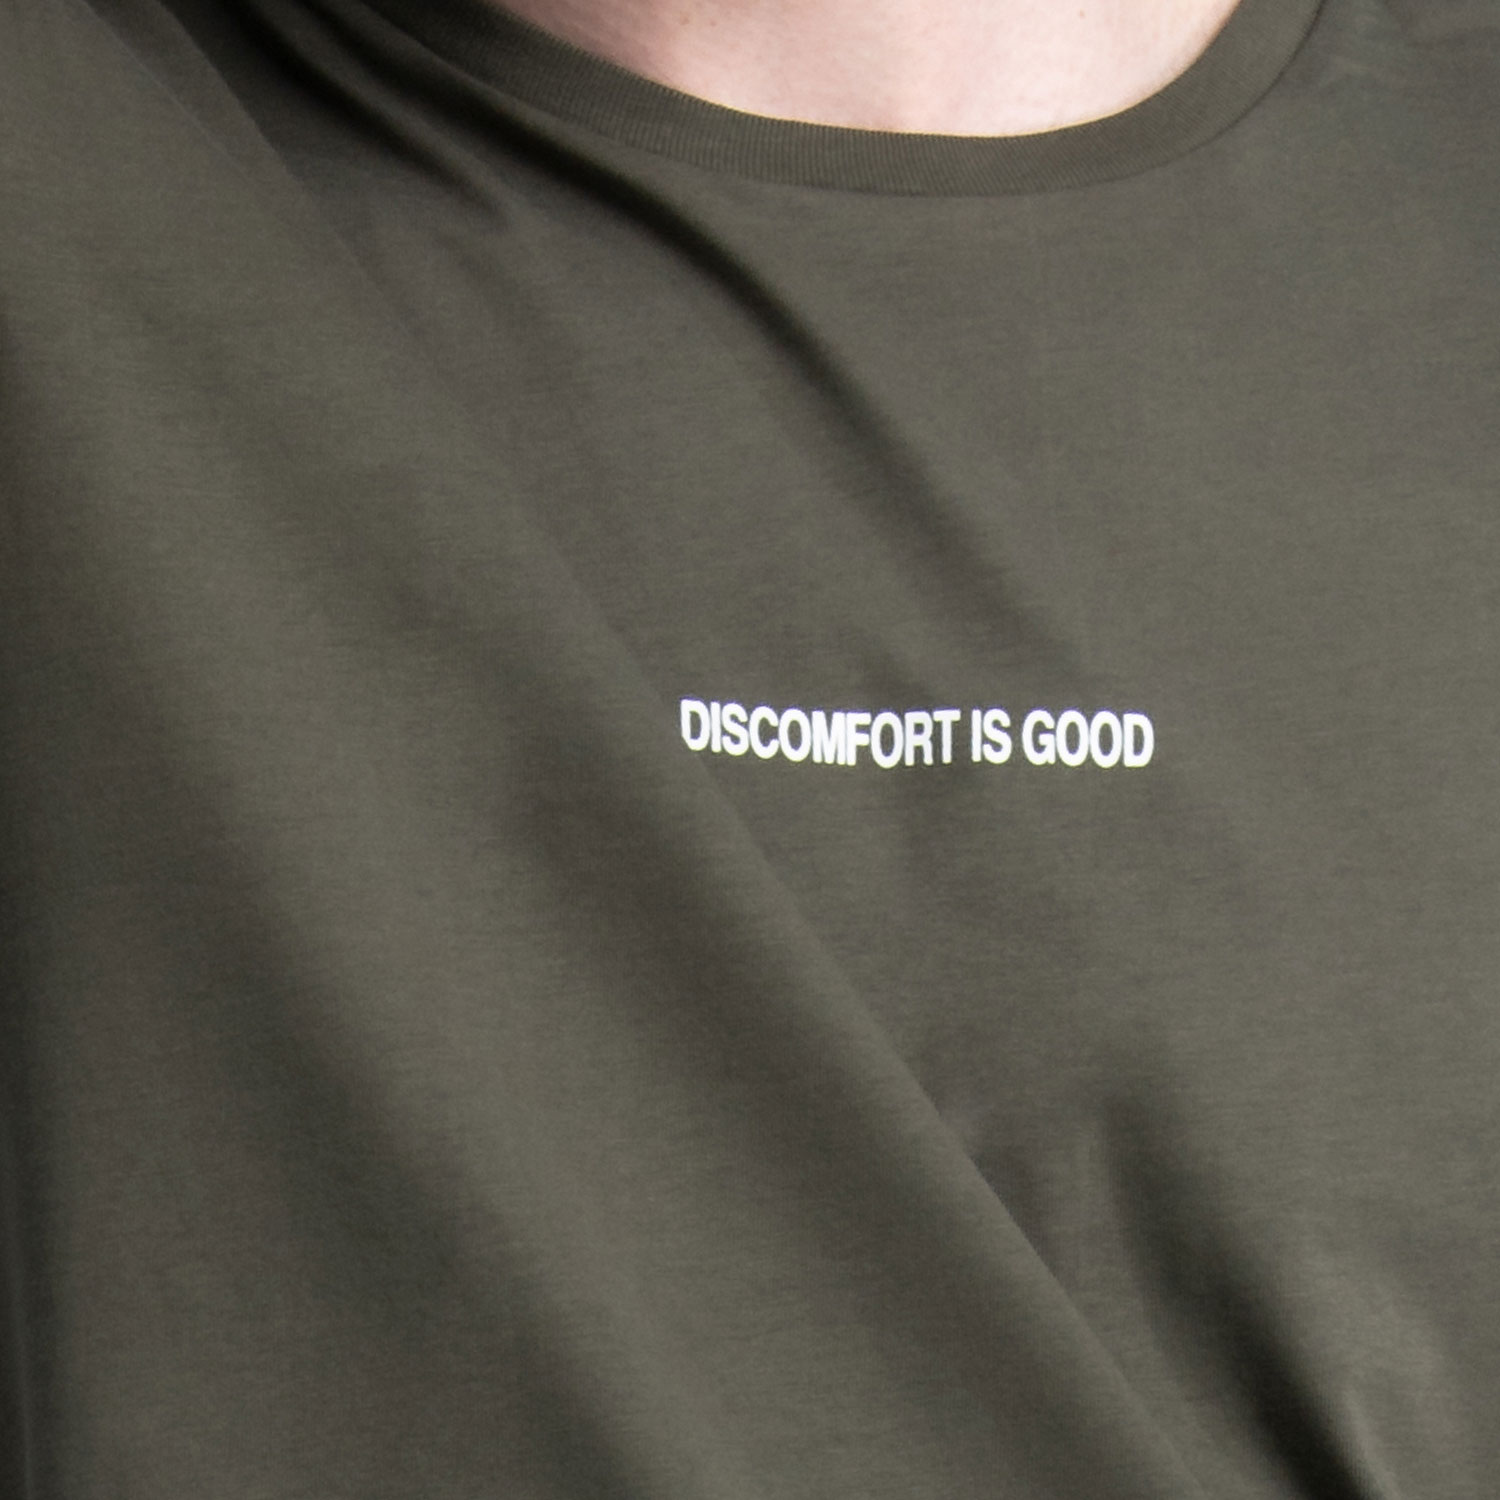 """Discomfort Is Good"" T-Shirt in Khaki Cotton"